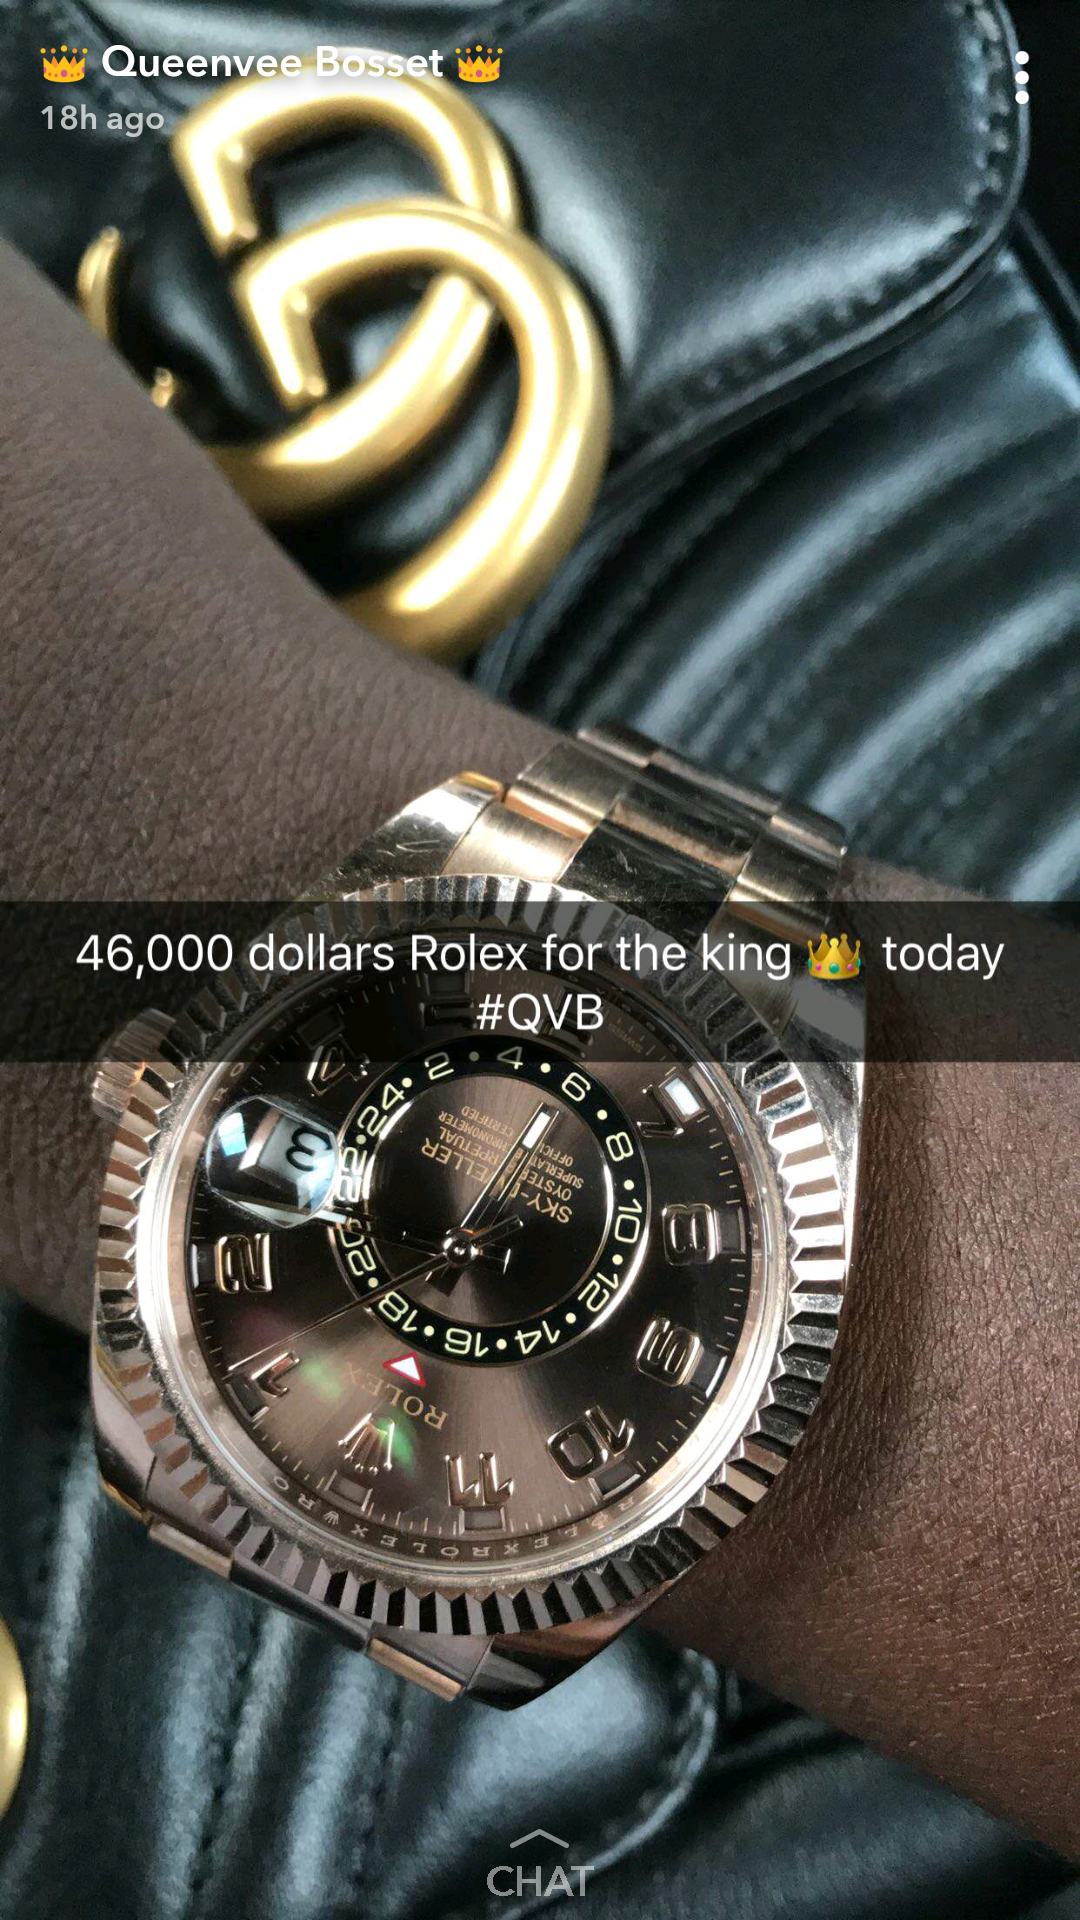 Vera Sidika shares photo of her mysterious Nigerian bae wearing a $46,000 rolex watch